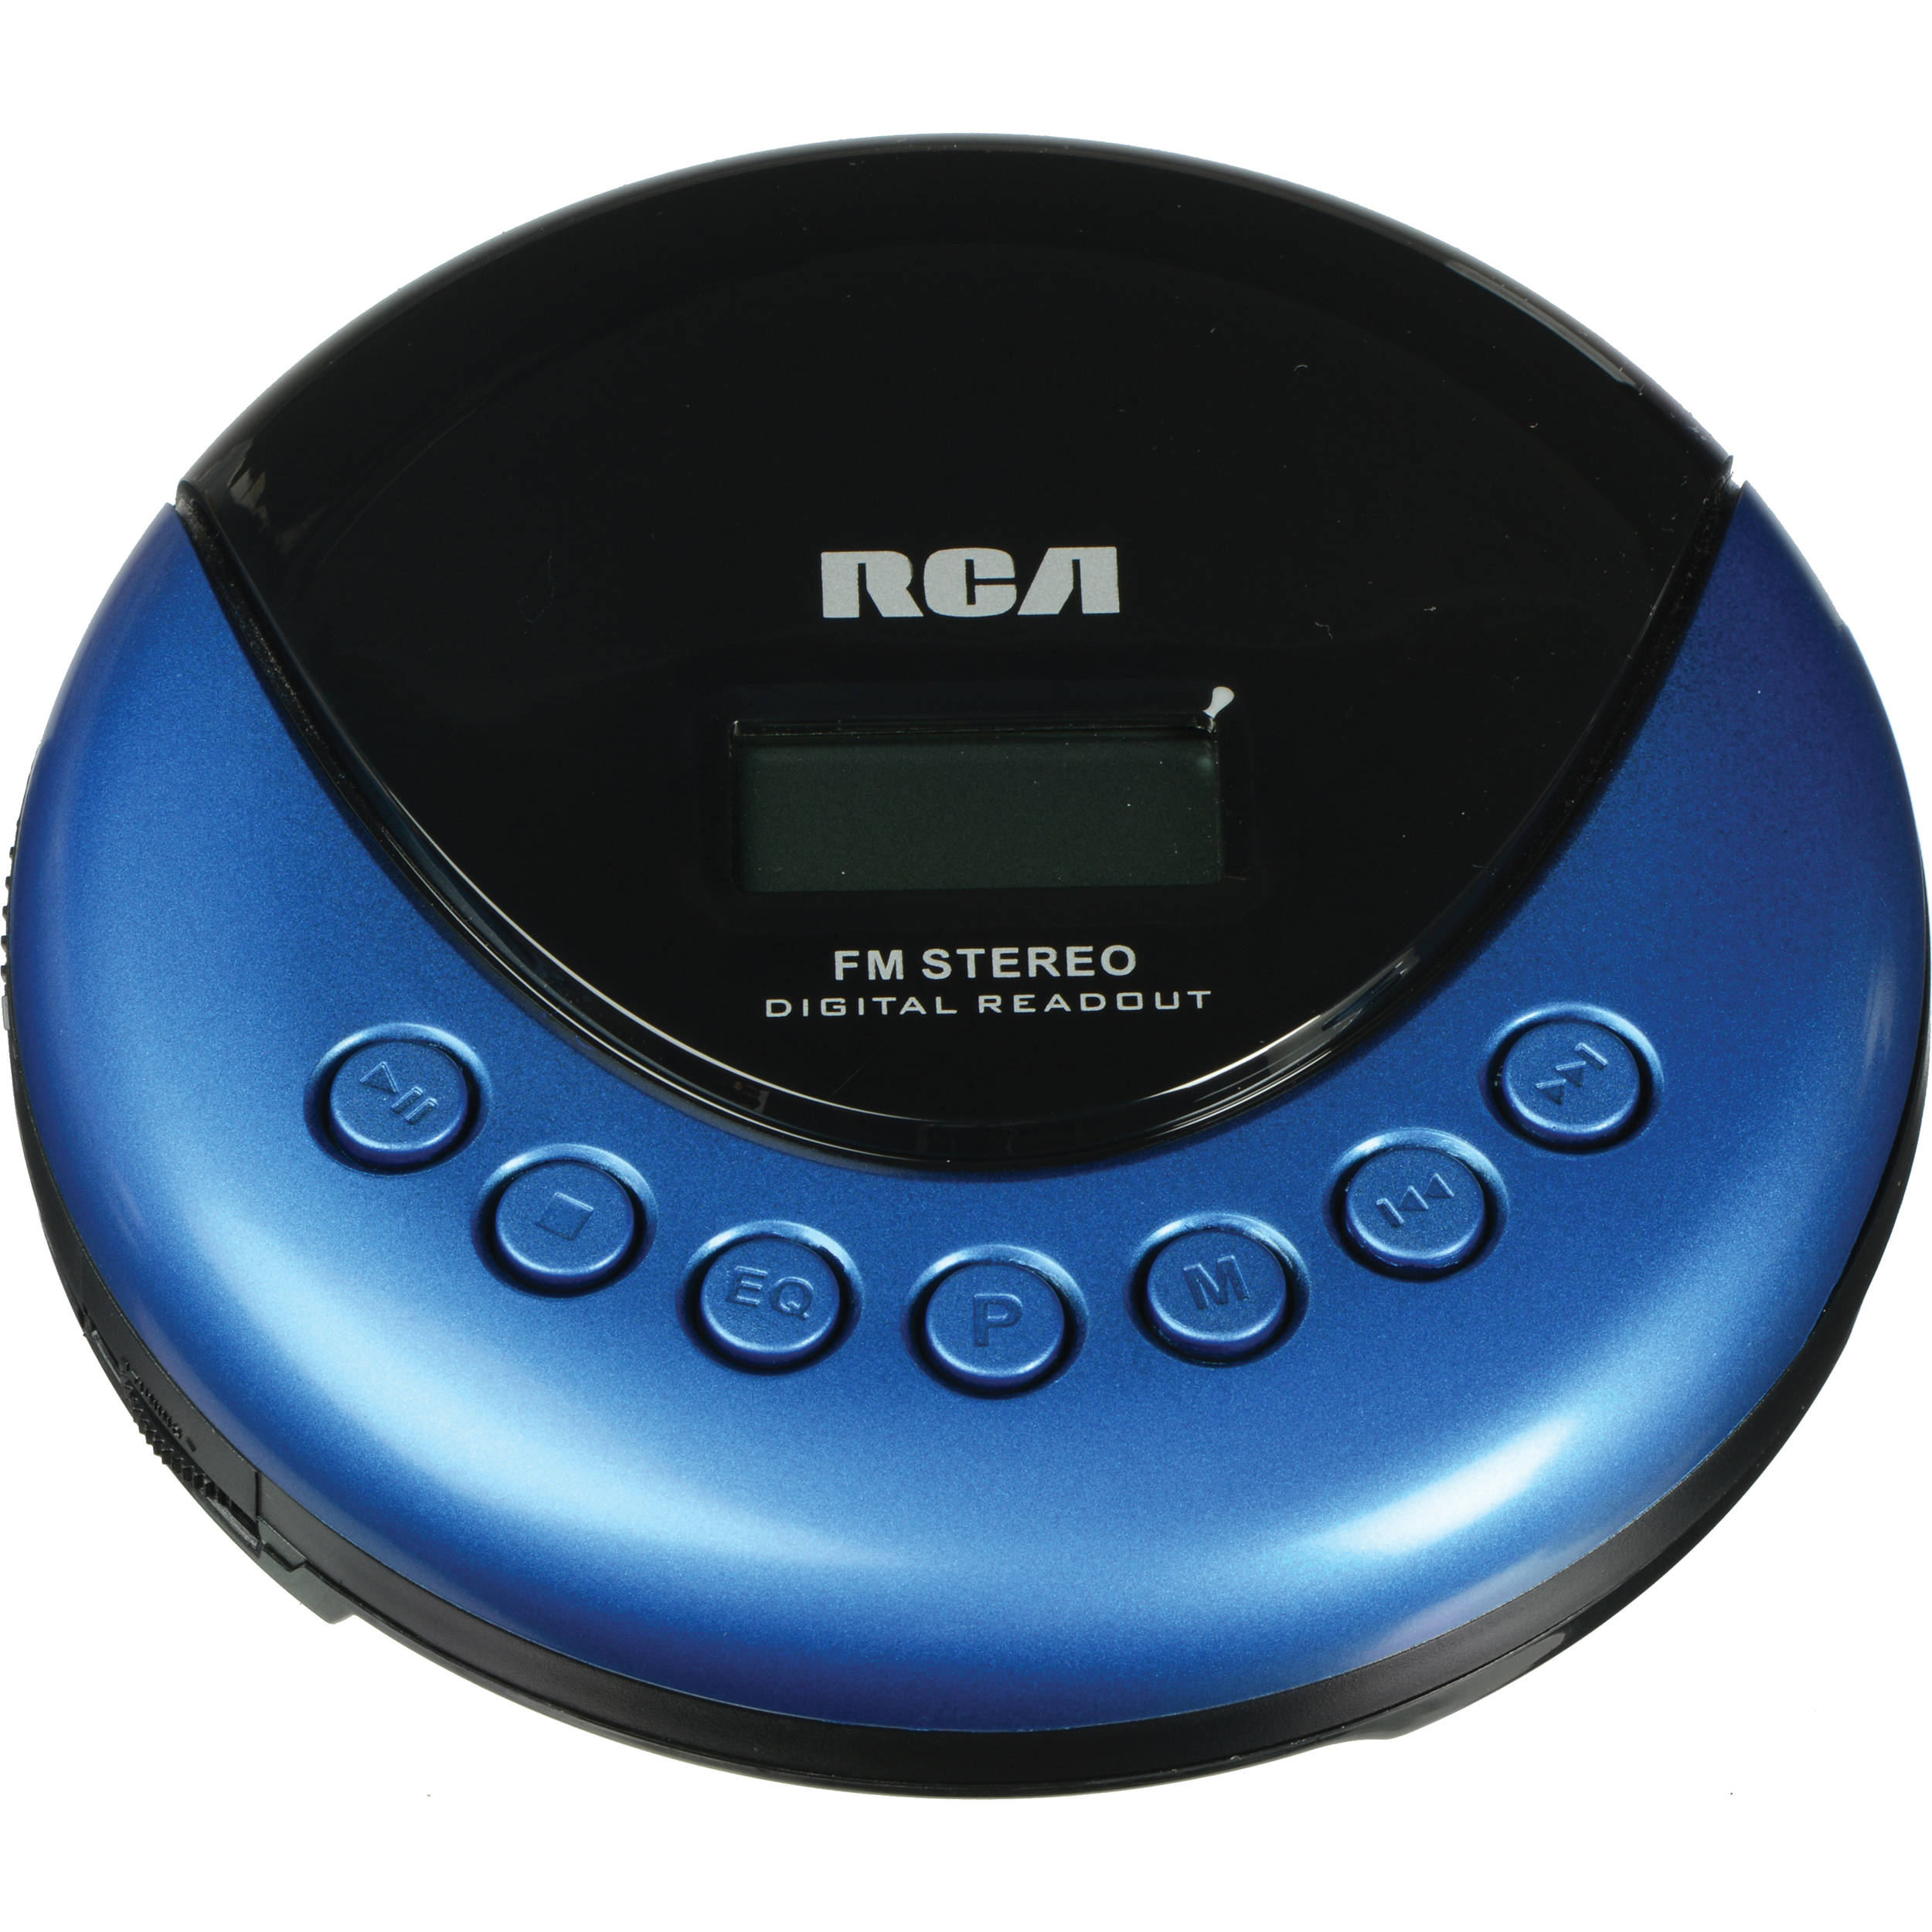 CD Players - Compact, Portable Personal - Newegg - m